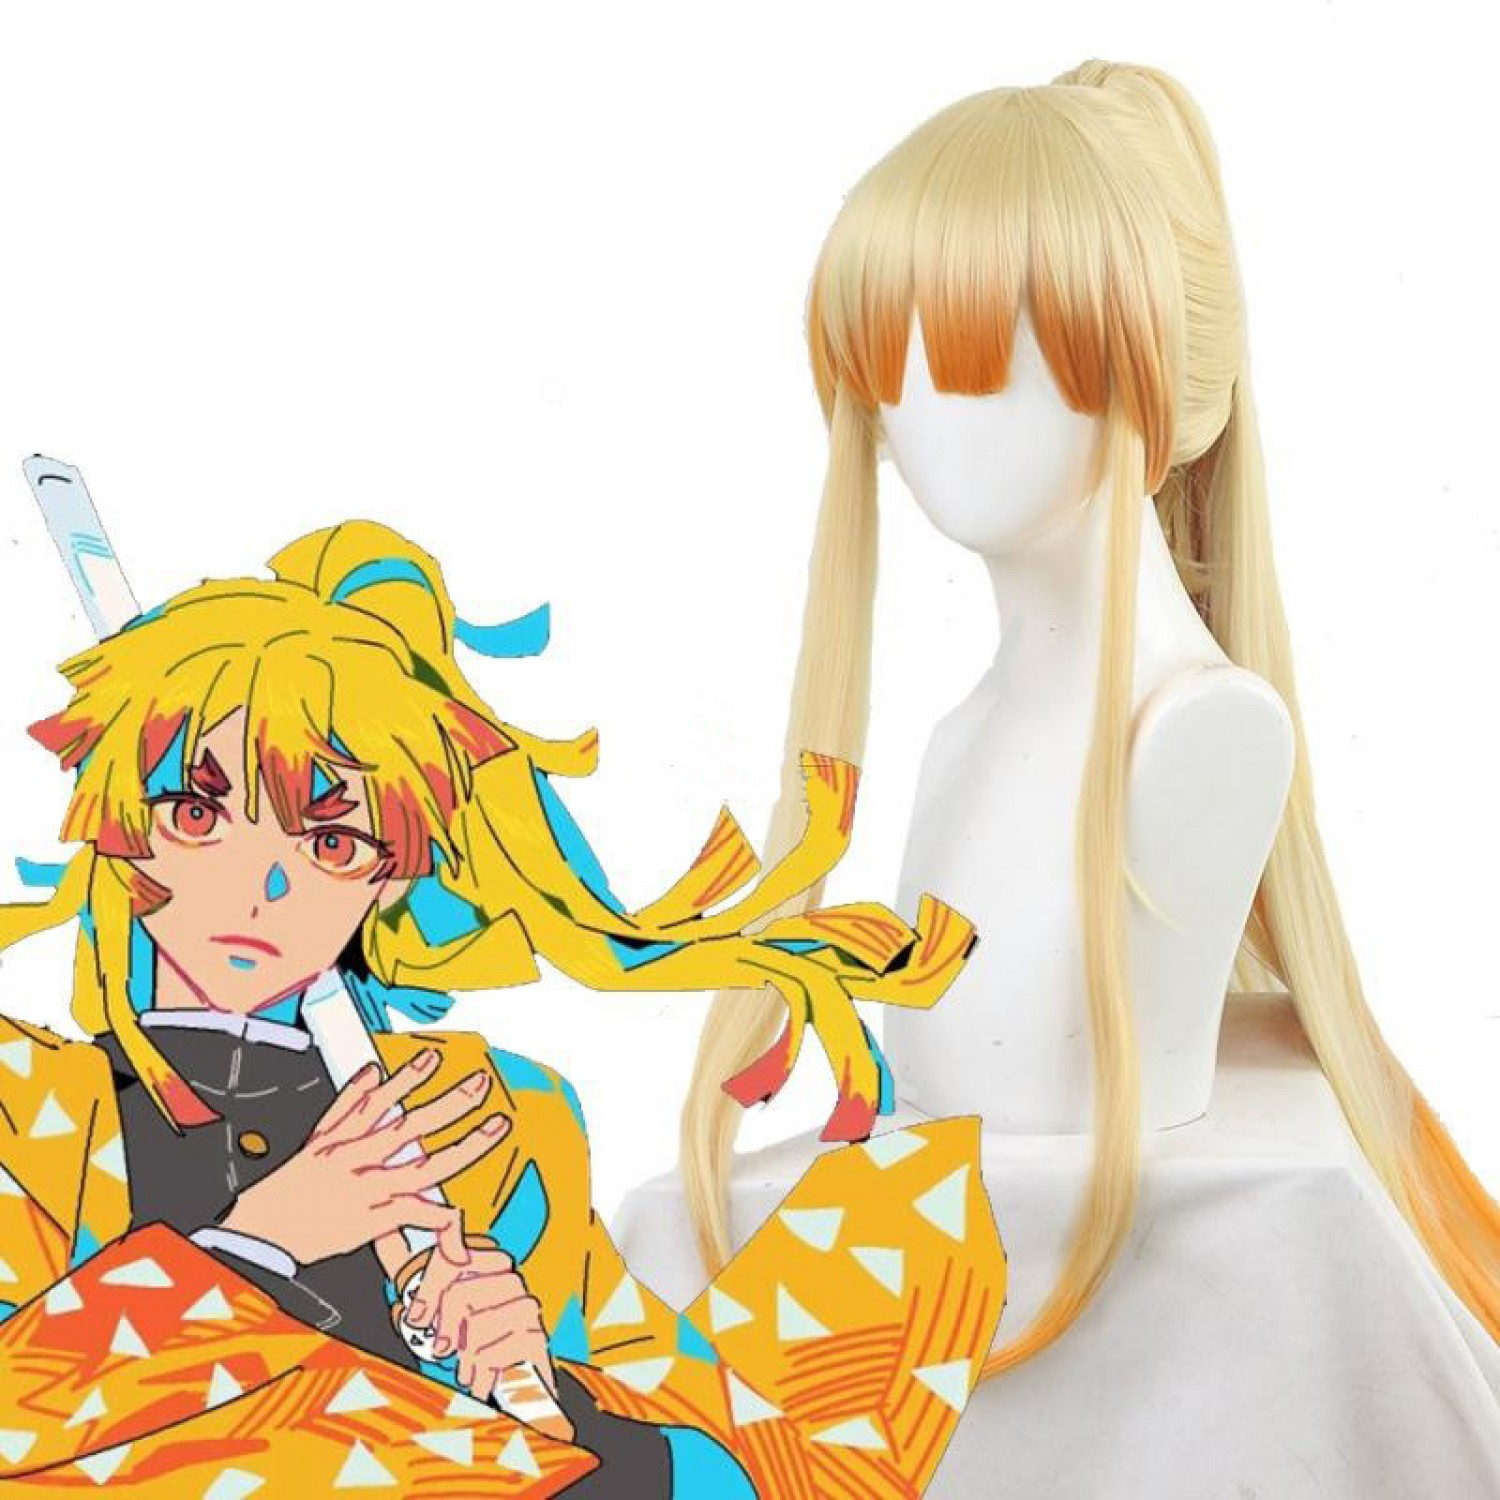 Demon Slayer Zenitsu Agatsuma Long Blonde Anime Cosplay Wig